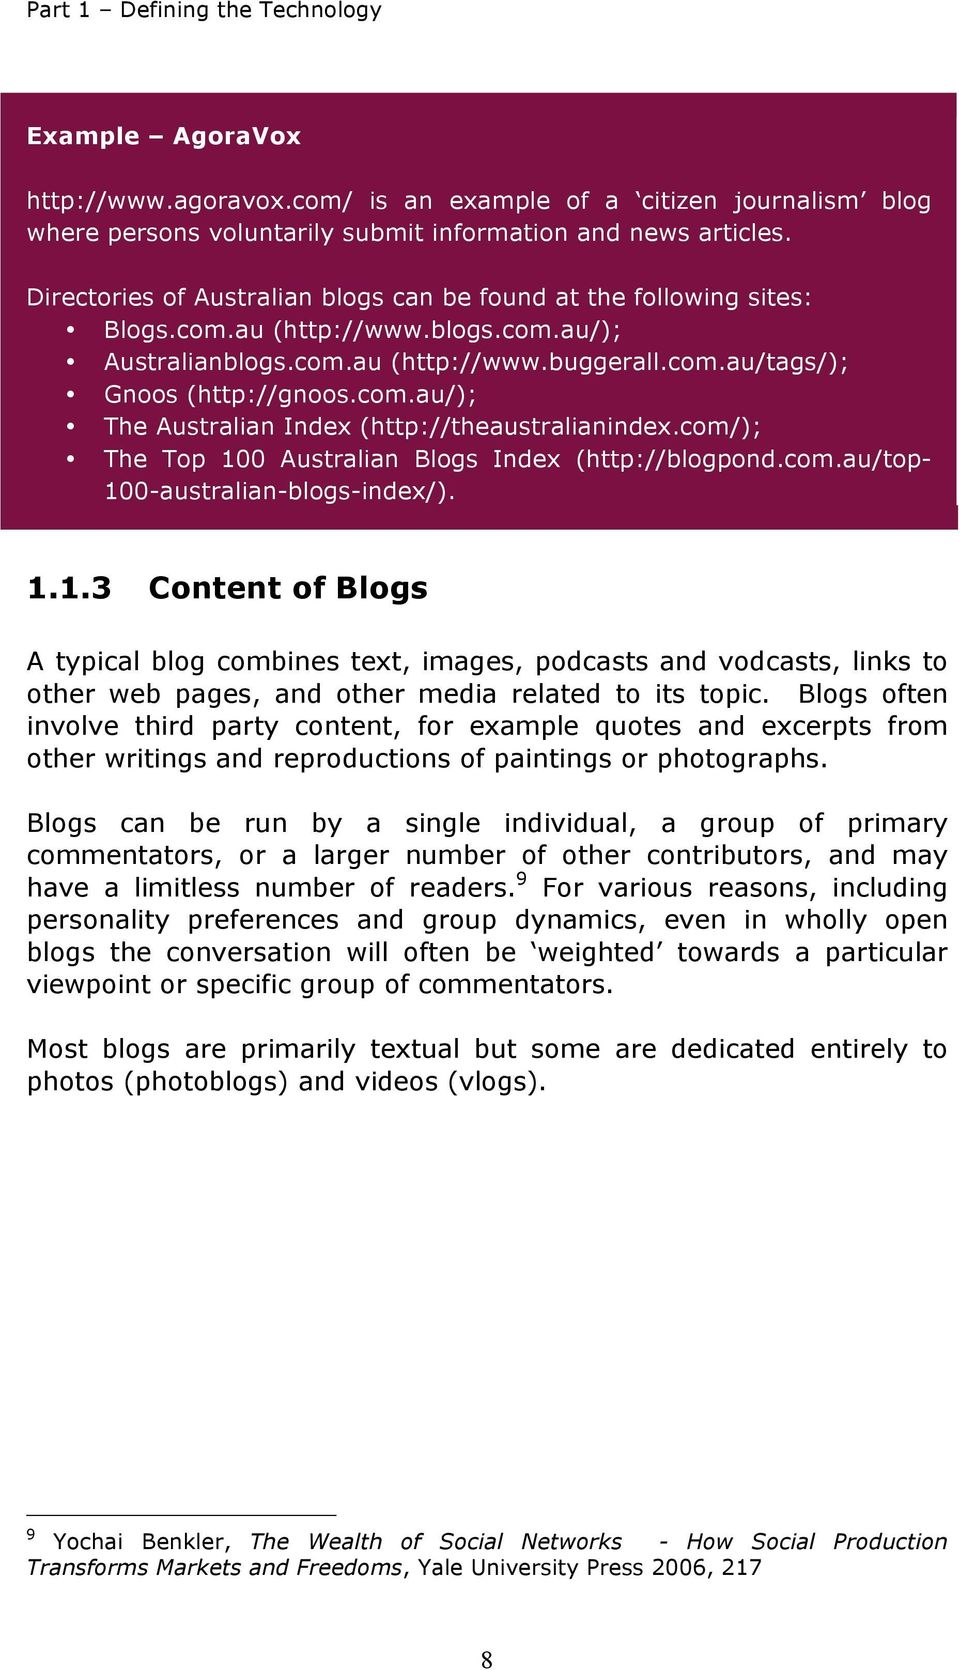 com/); The Top 100 Australian Blogs Index (http://blogpond.com.au/top- 100-australian-blogs-index/). 1.1.3 Content of Blogs A typical blog combines text, images, podcasts and vodcasts, links to other web pages, and other media related to its topic.